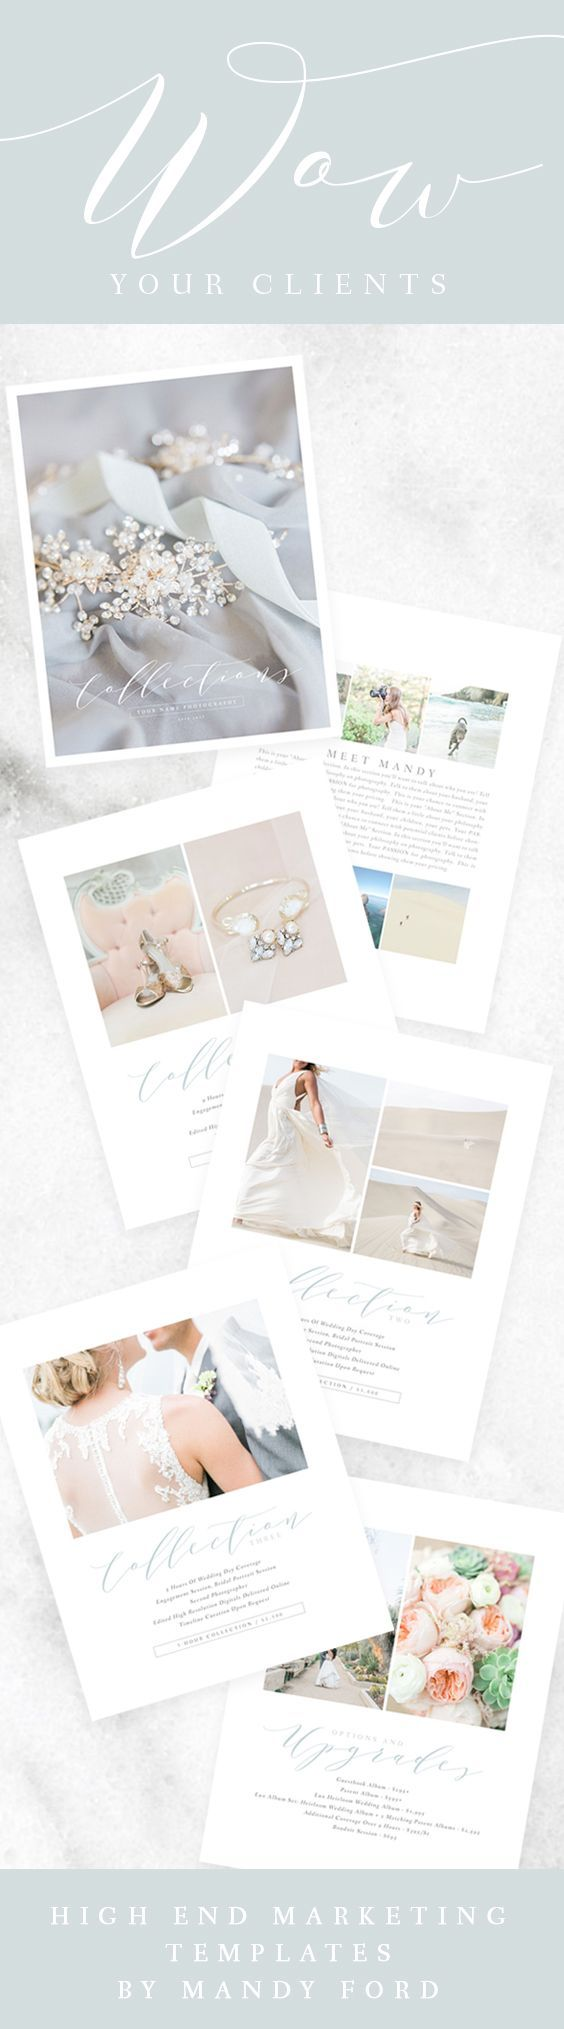 Wedding Photography Price List Multi-Page Guide | Photographer Pricing Guide Template | Wedding Package Pricing | Price Templates For Photographers | Minimalist Pricing Templates